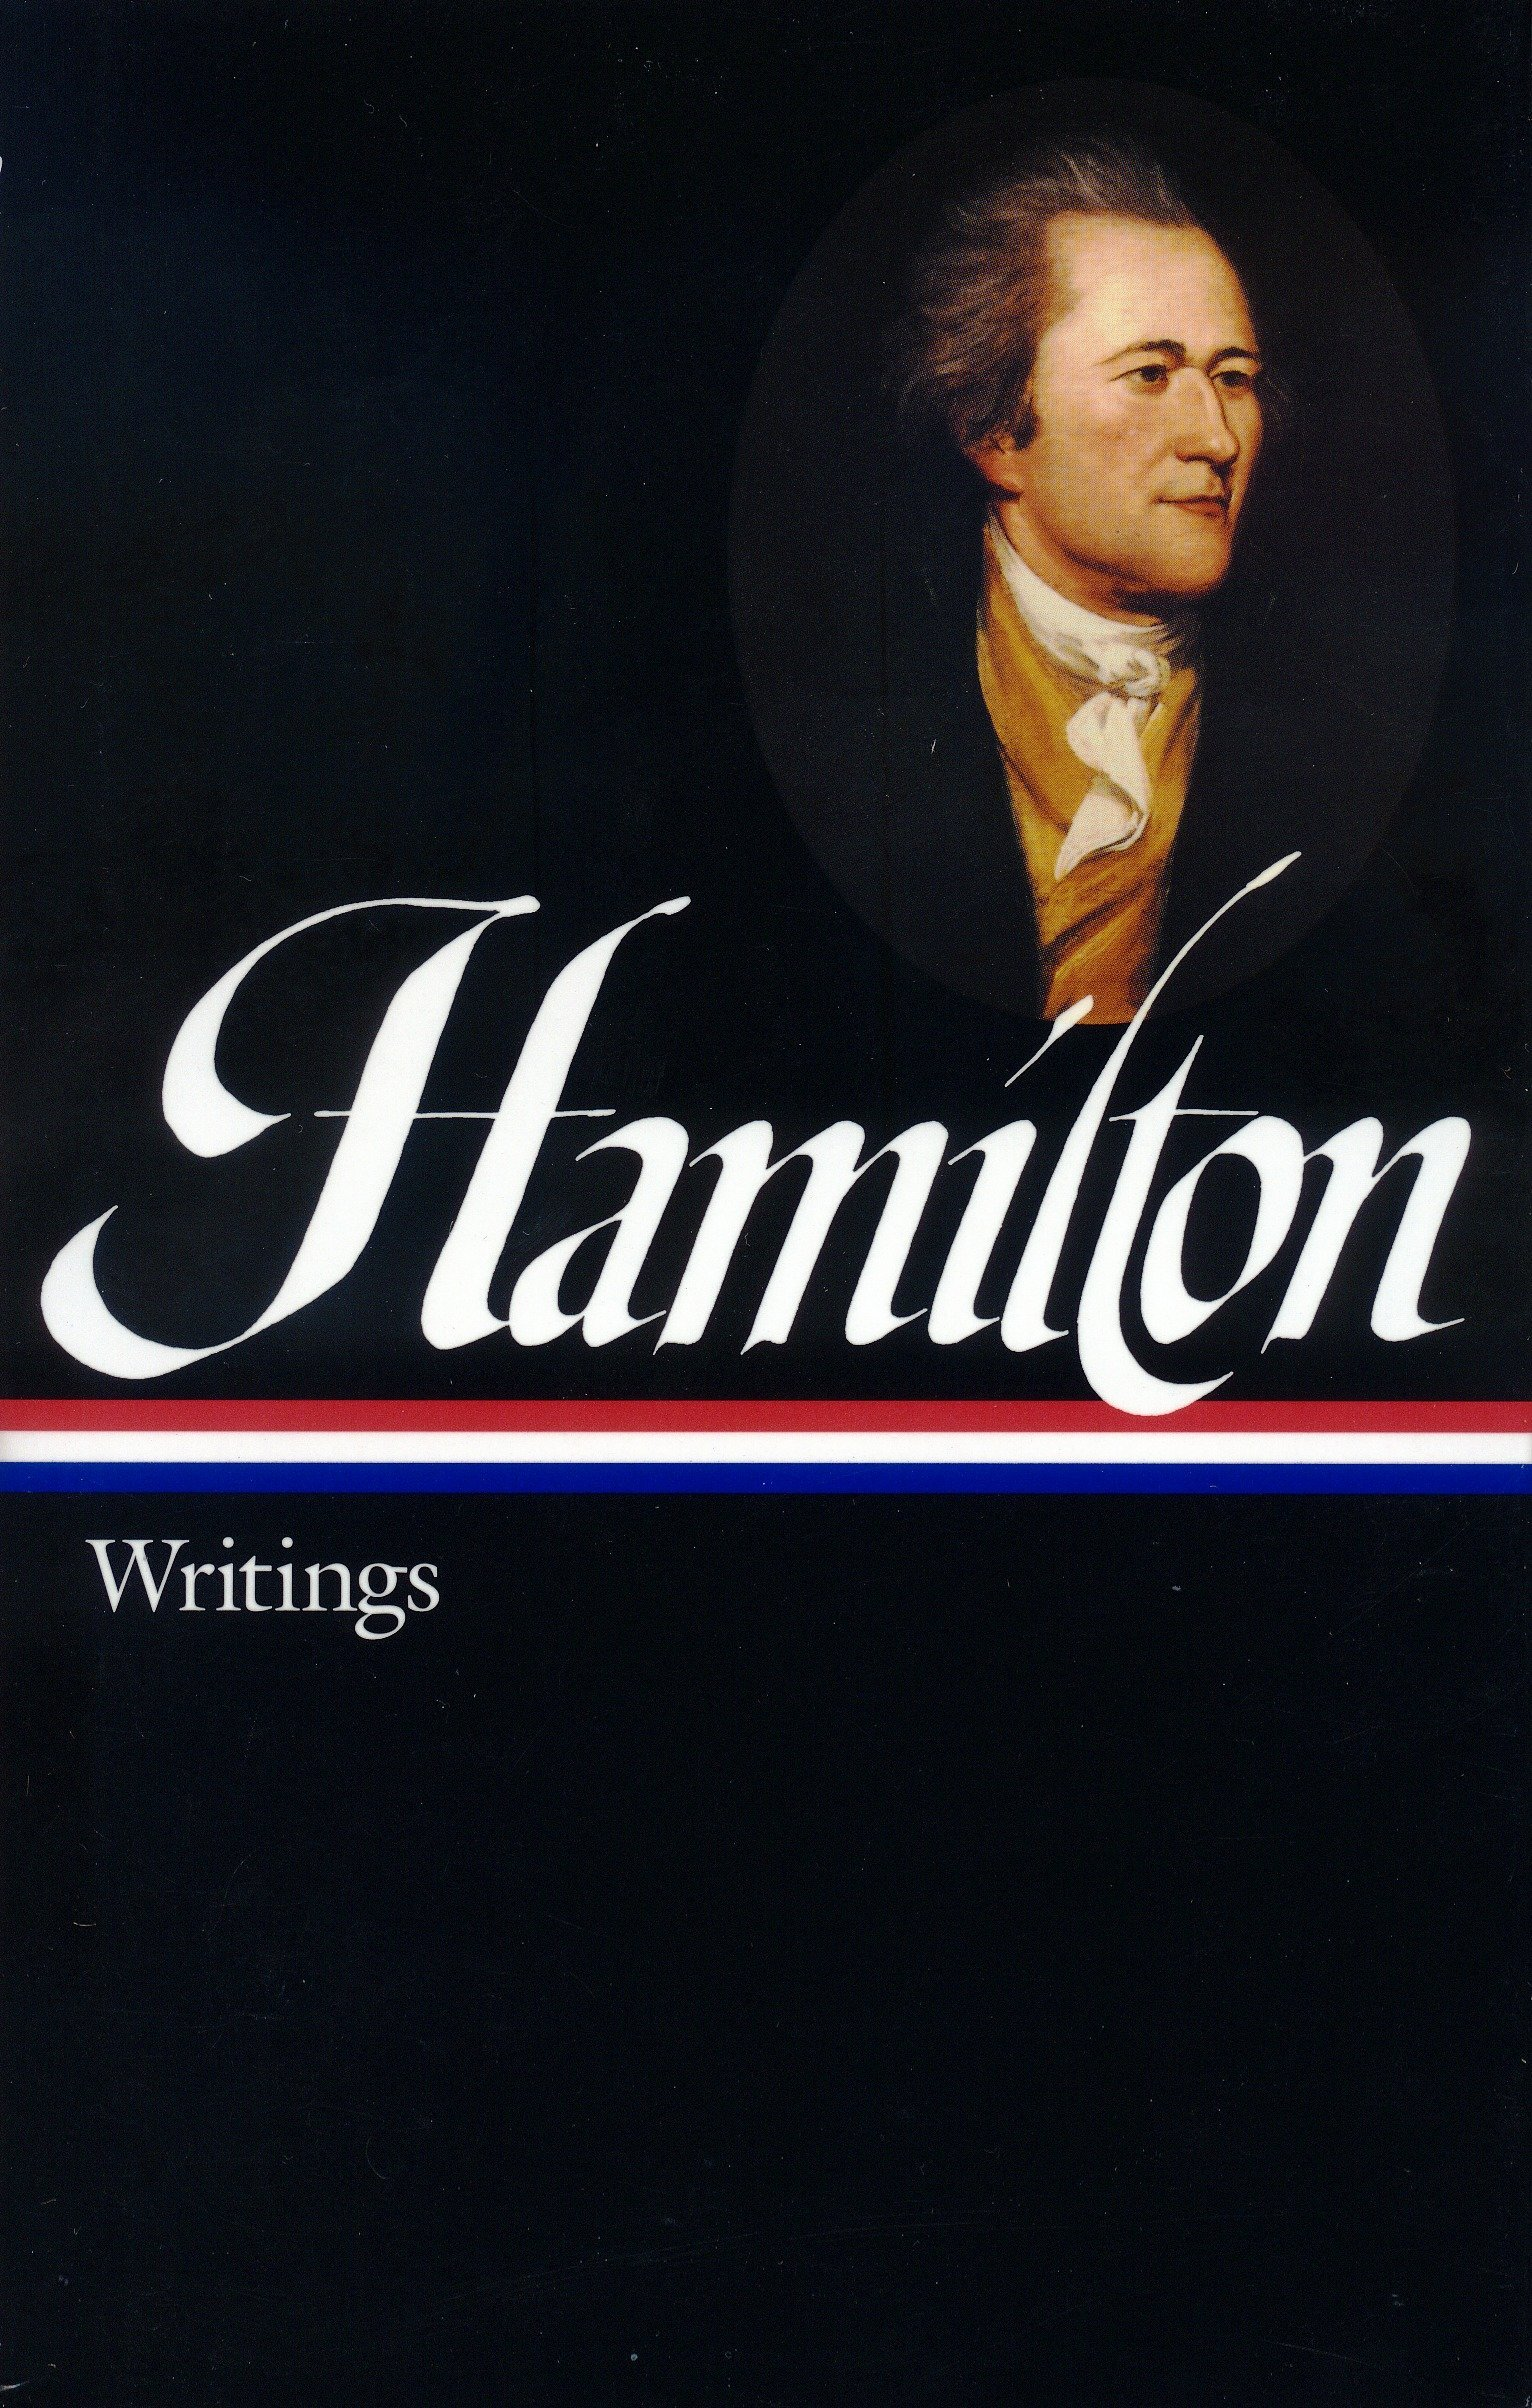 Read Online Alexander Hamilton: Writings (LOA #129) (Library of America Founders Collection) PDF